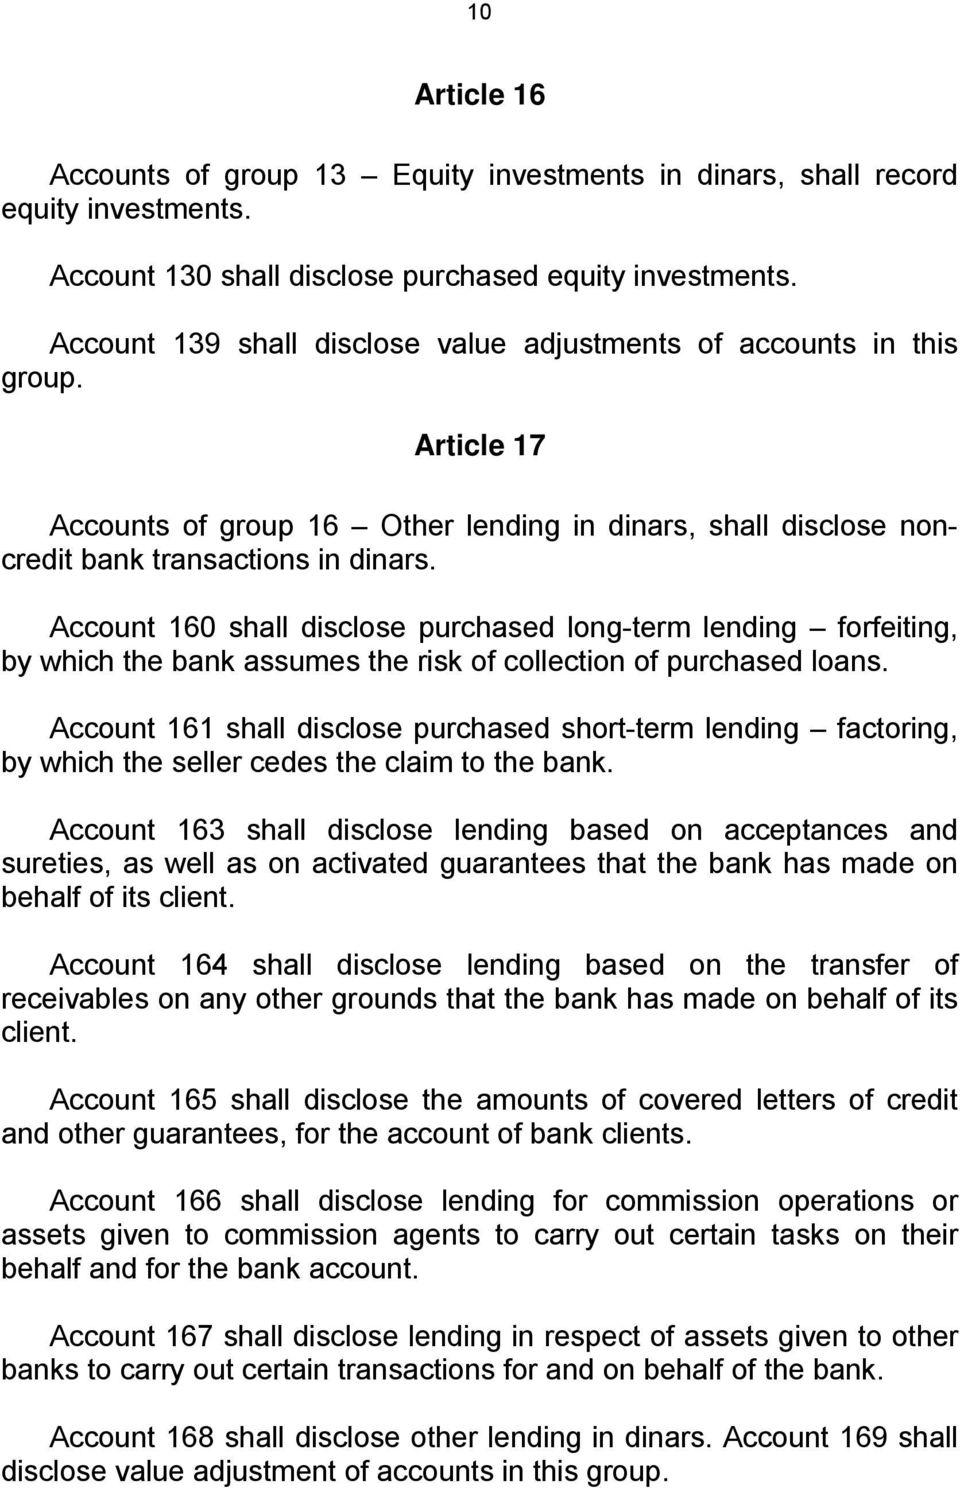 Account 160 shall disclose purchased long-term lending forfeiting, by which the bank assumes the risk of collection of purchased loans.